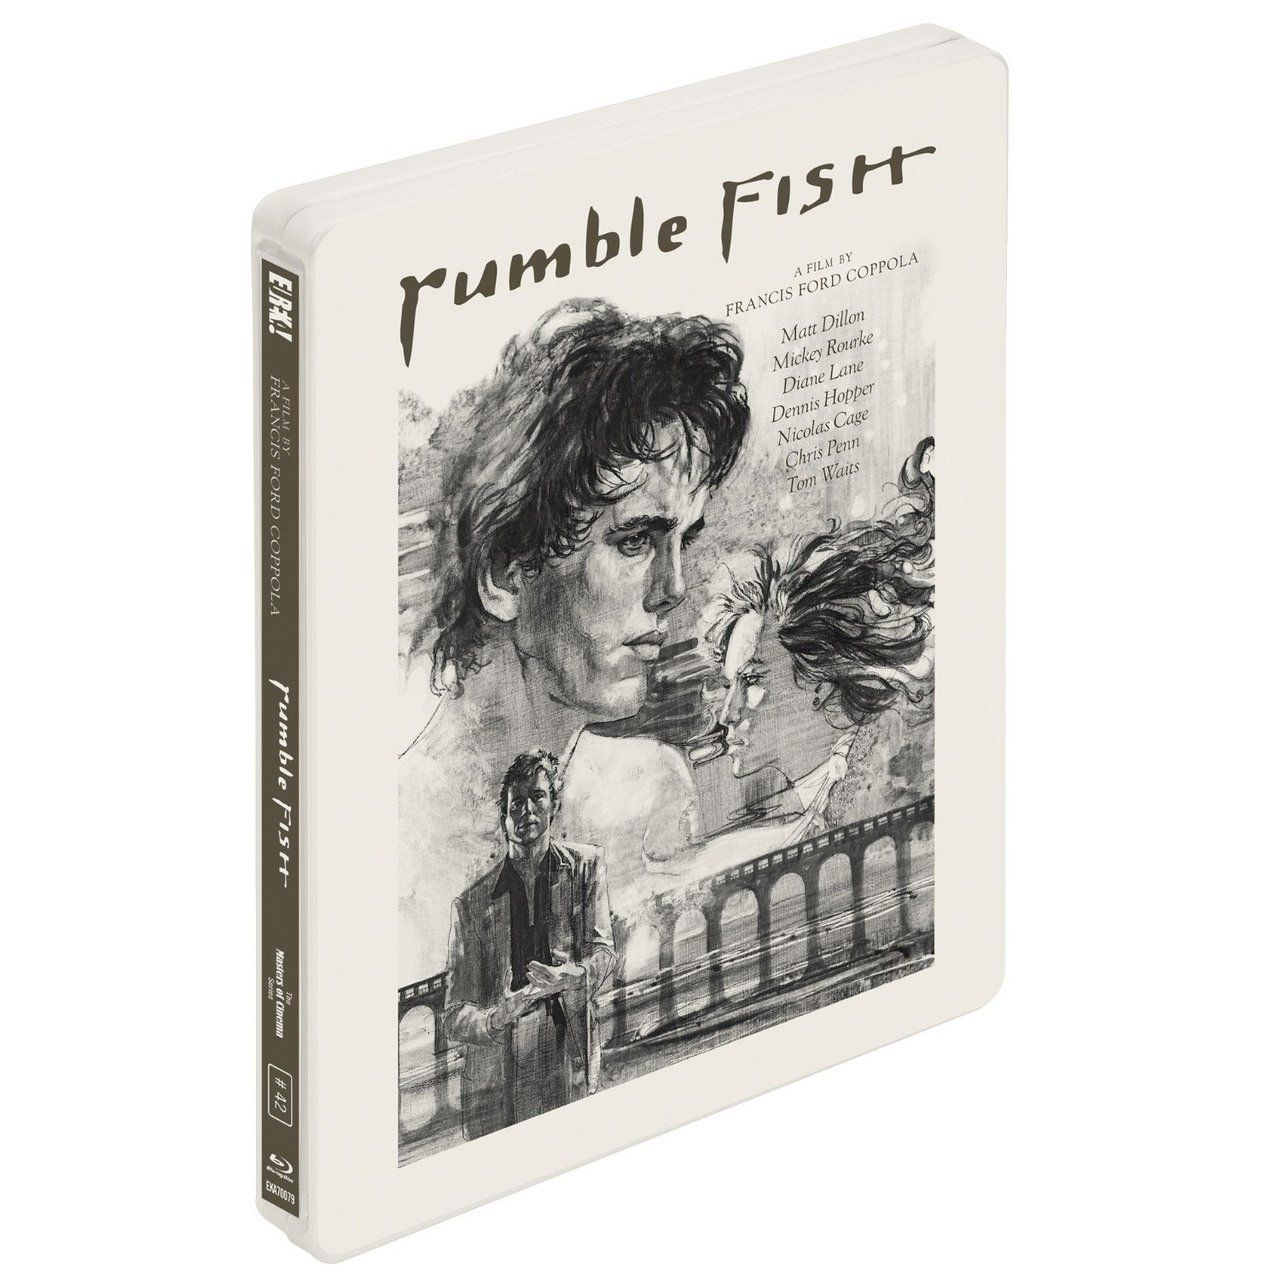 Rumble fish coppola august 27th uk for Rumble fish summary